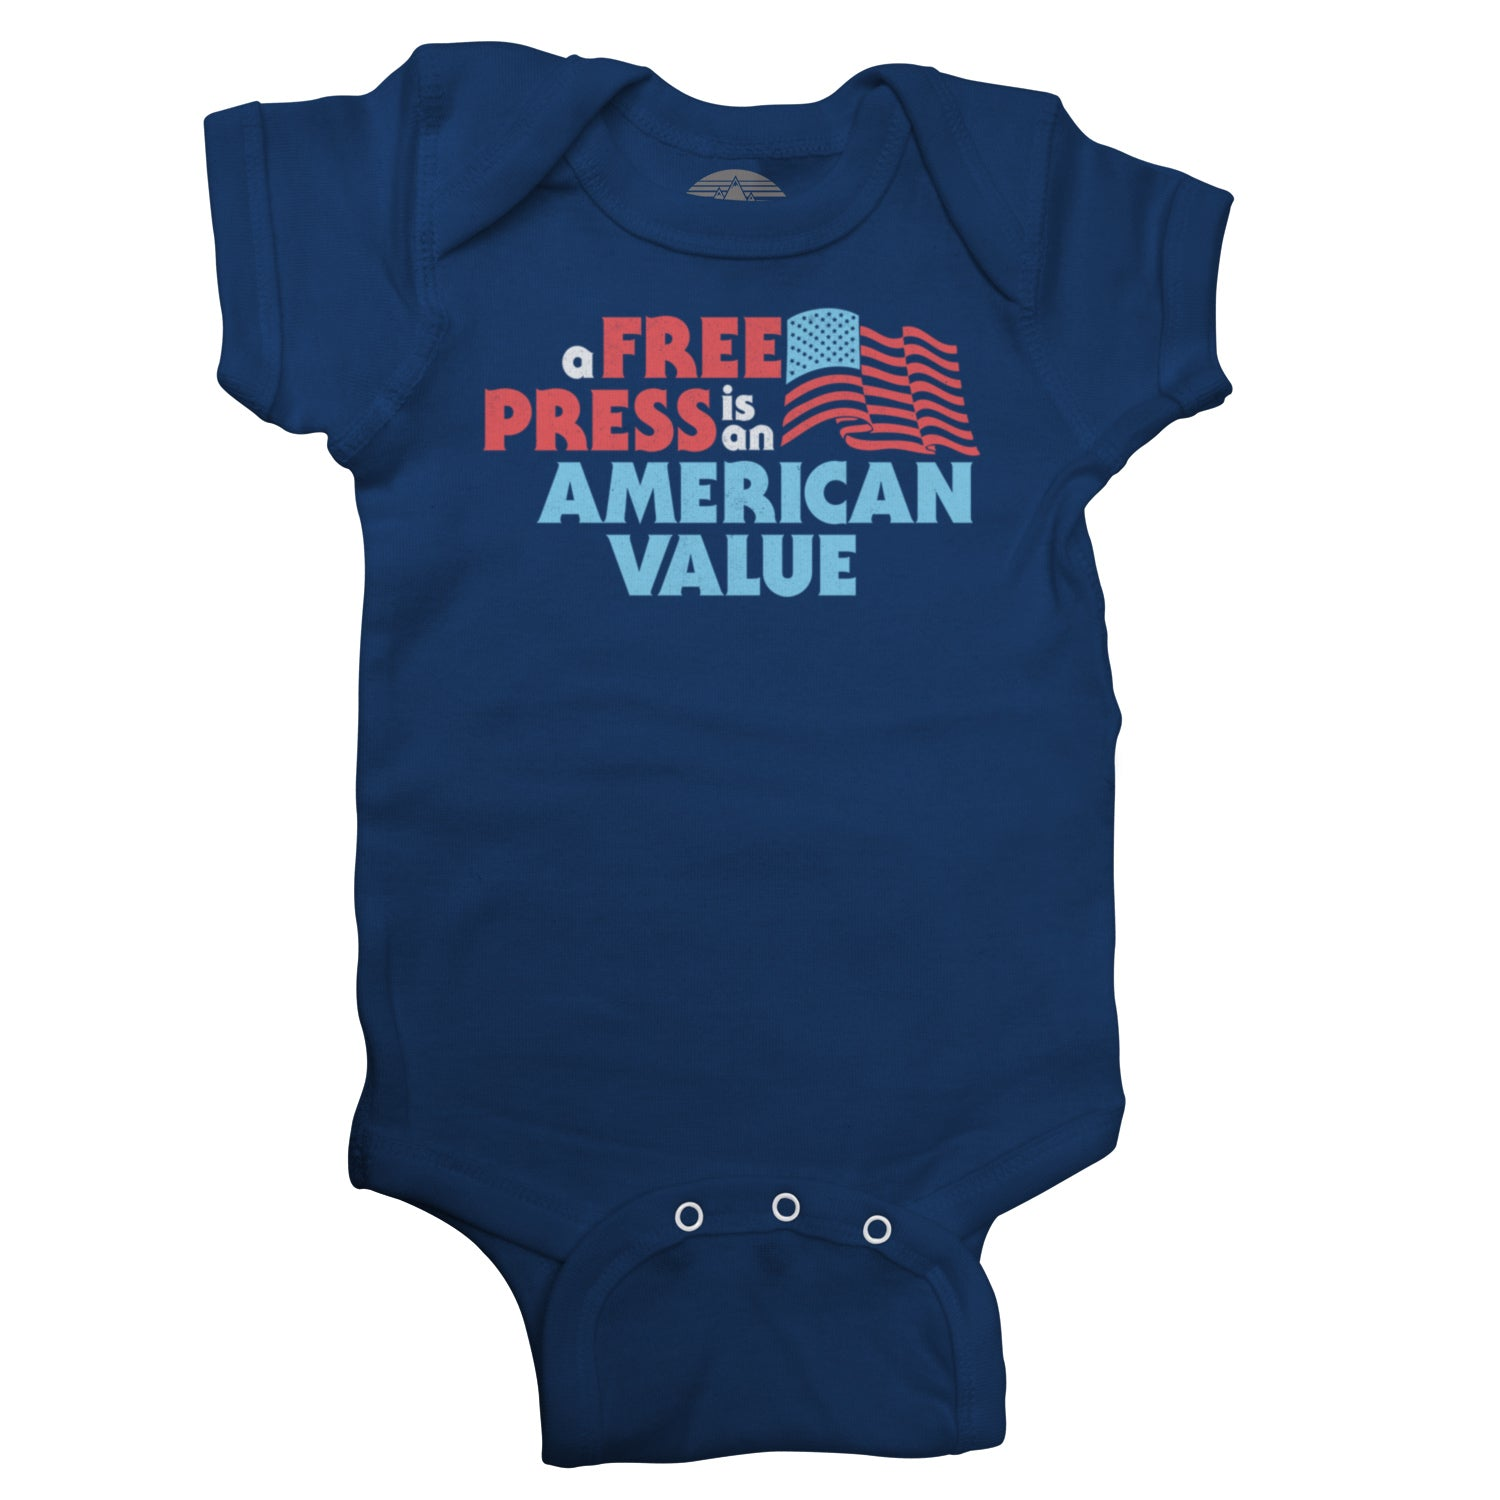 A Free Press is an American Value Infant Bodysuit - Unisex Fit